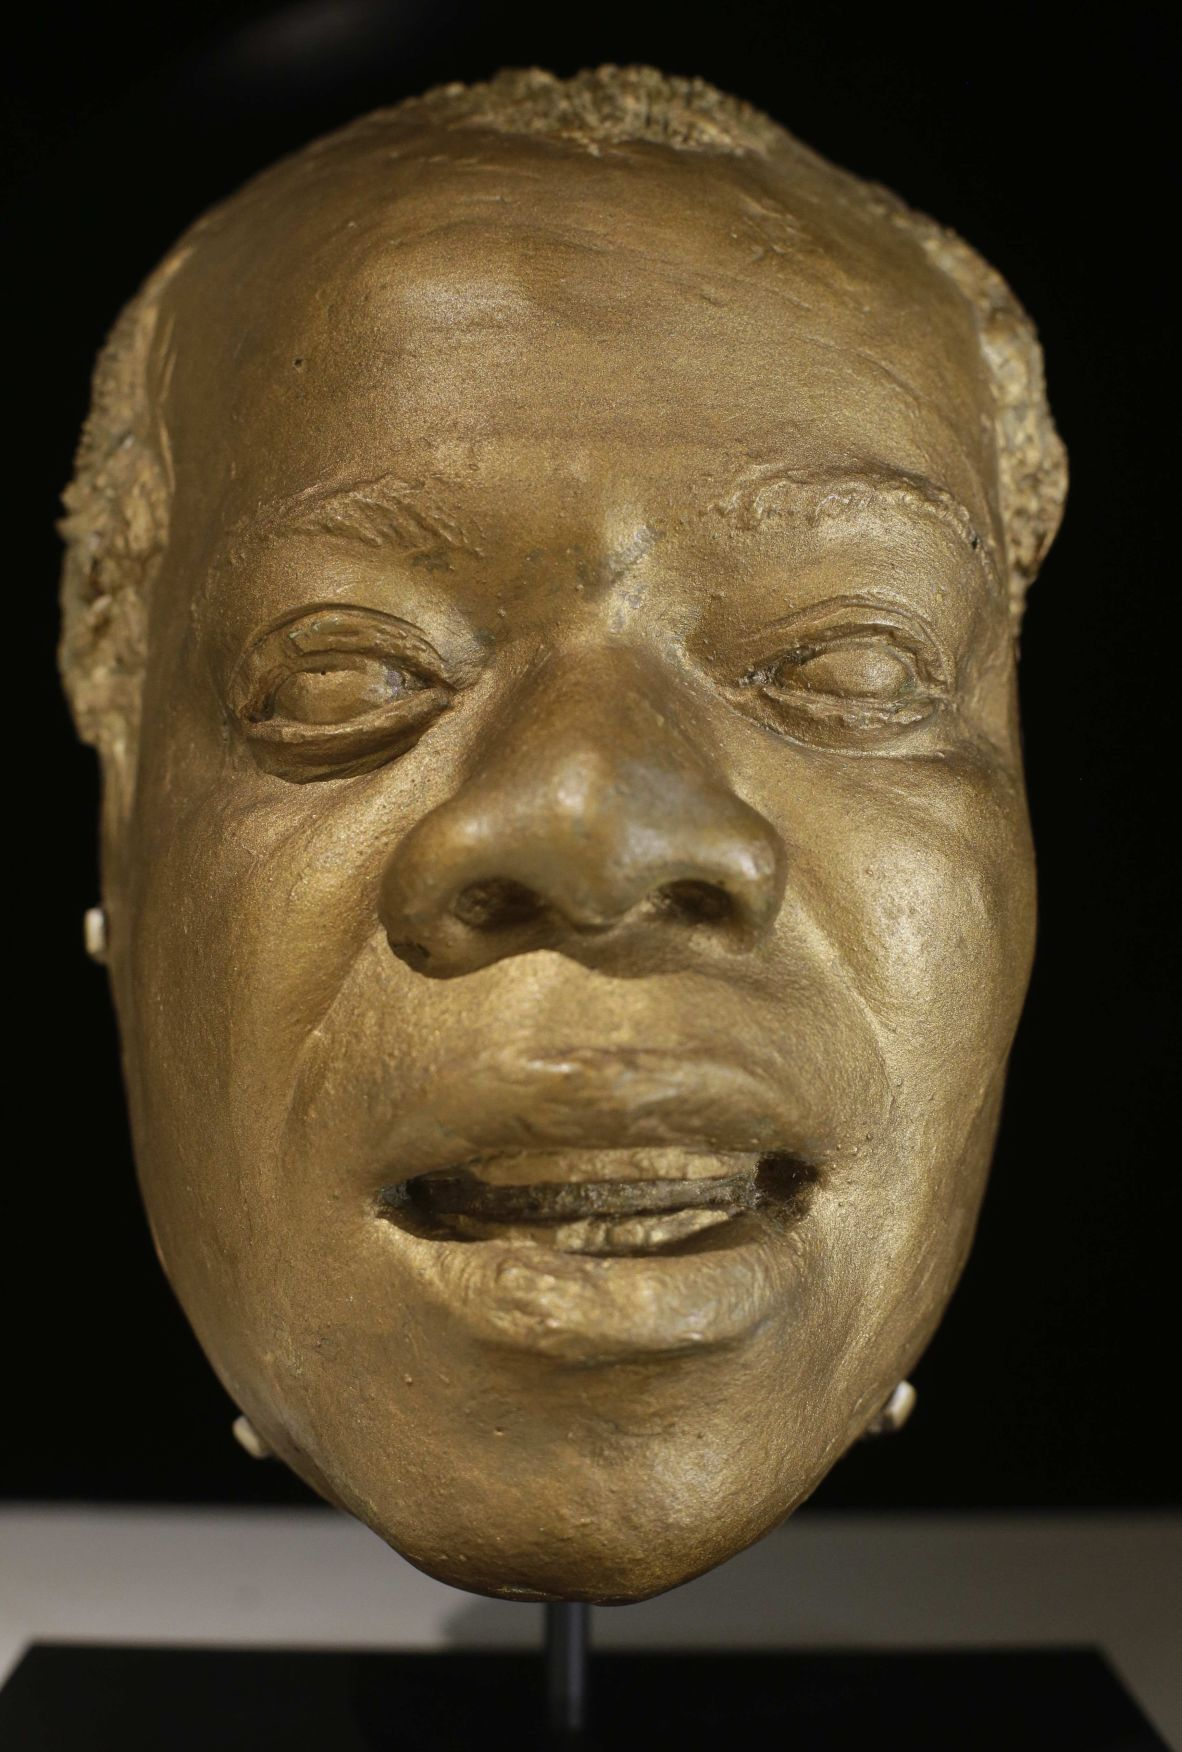 Louis Armstrong Satchmo's house marks 10 years as a NYC museum